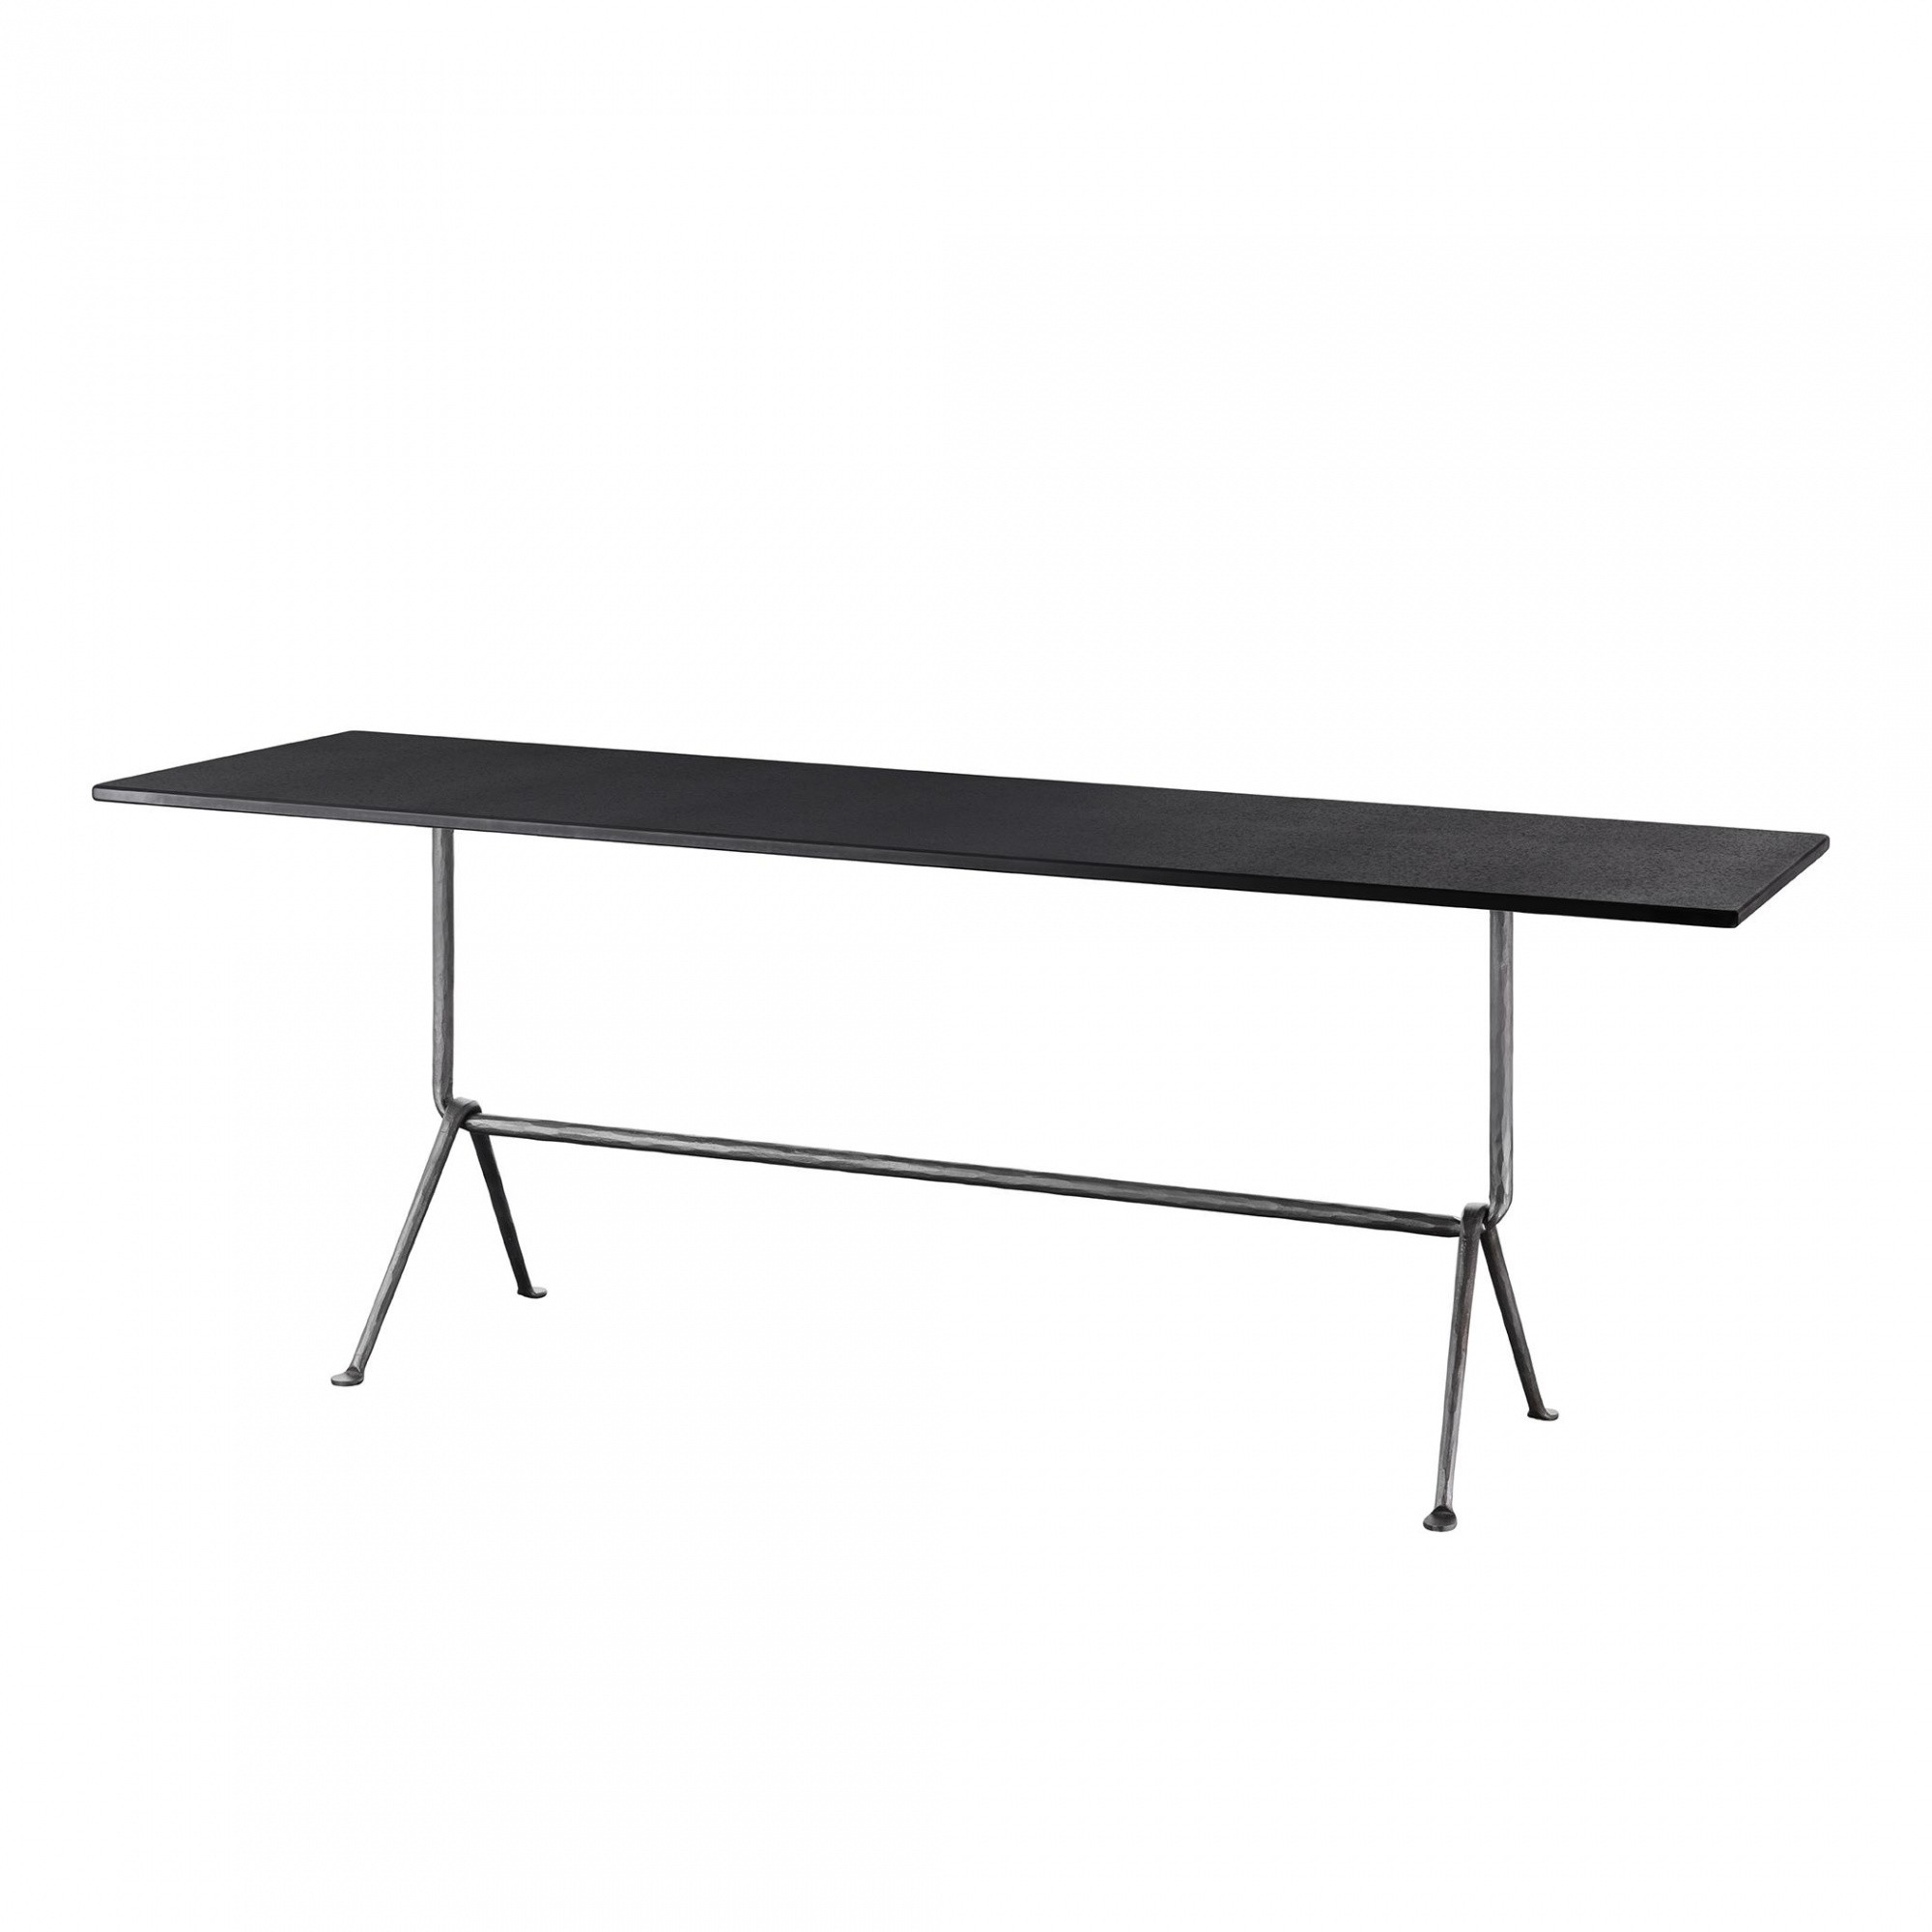 Magis Officina Fratino Dining Table 200x65x72cm Ambientedirect